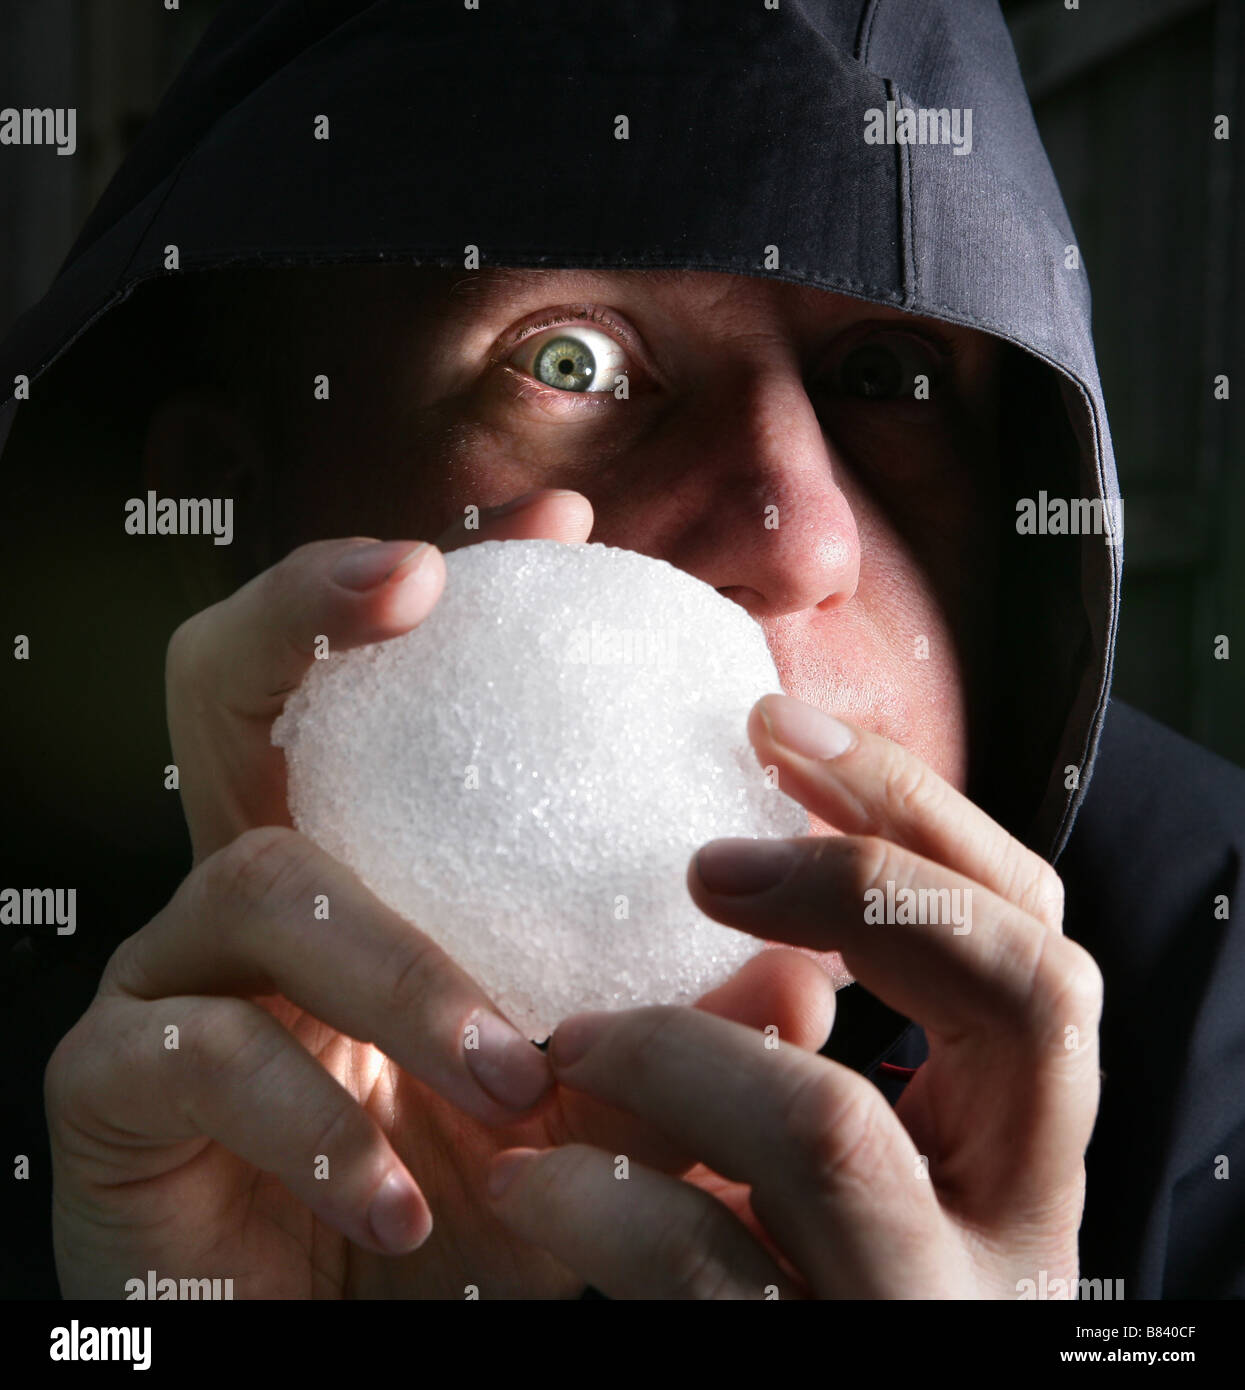 A man holds a snowball as he plans to throw it at his victim - Stock Image